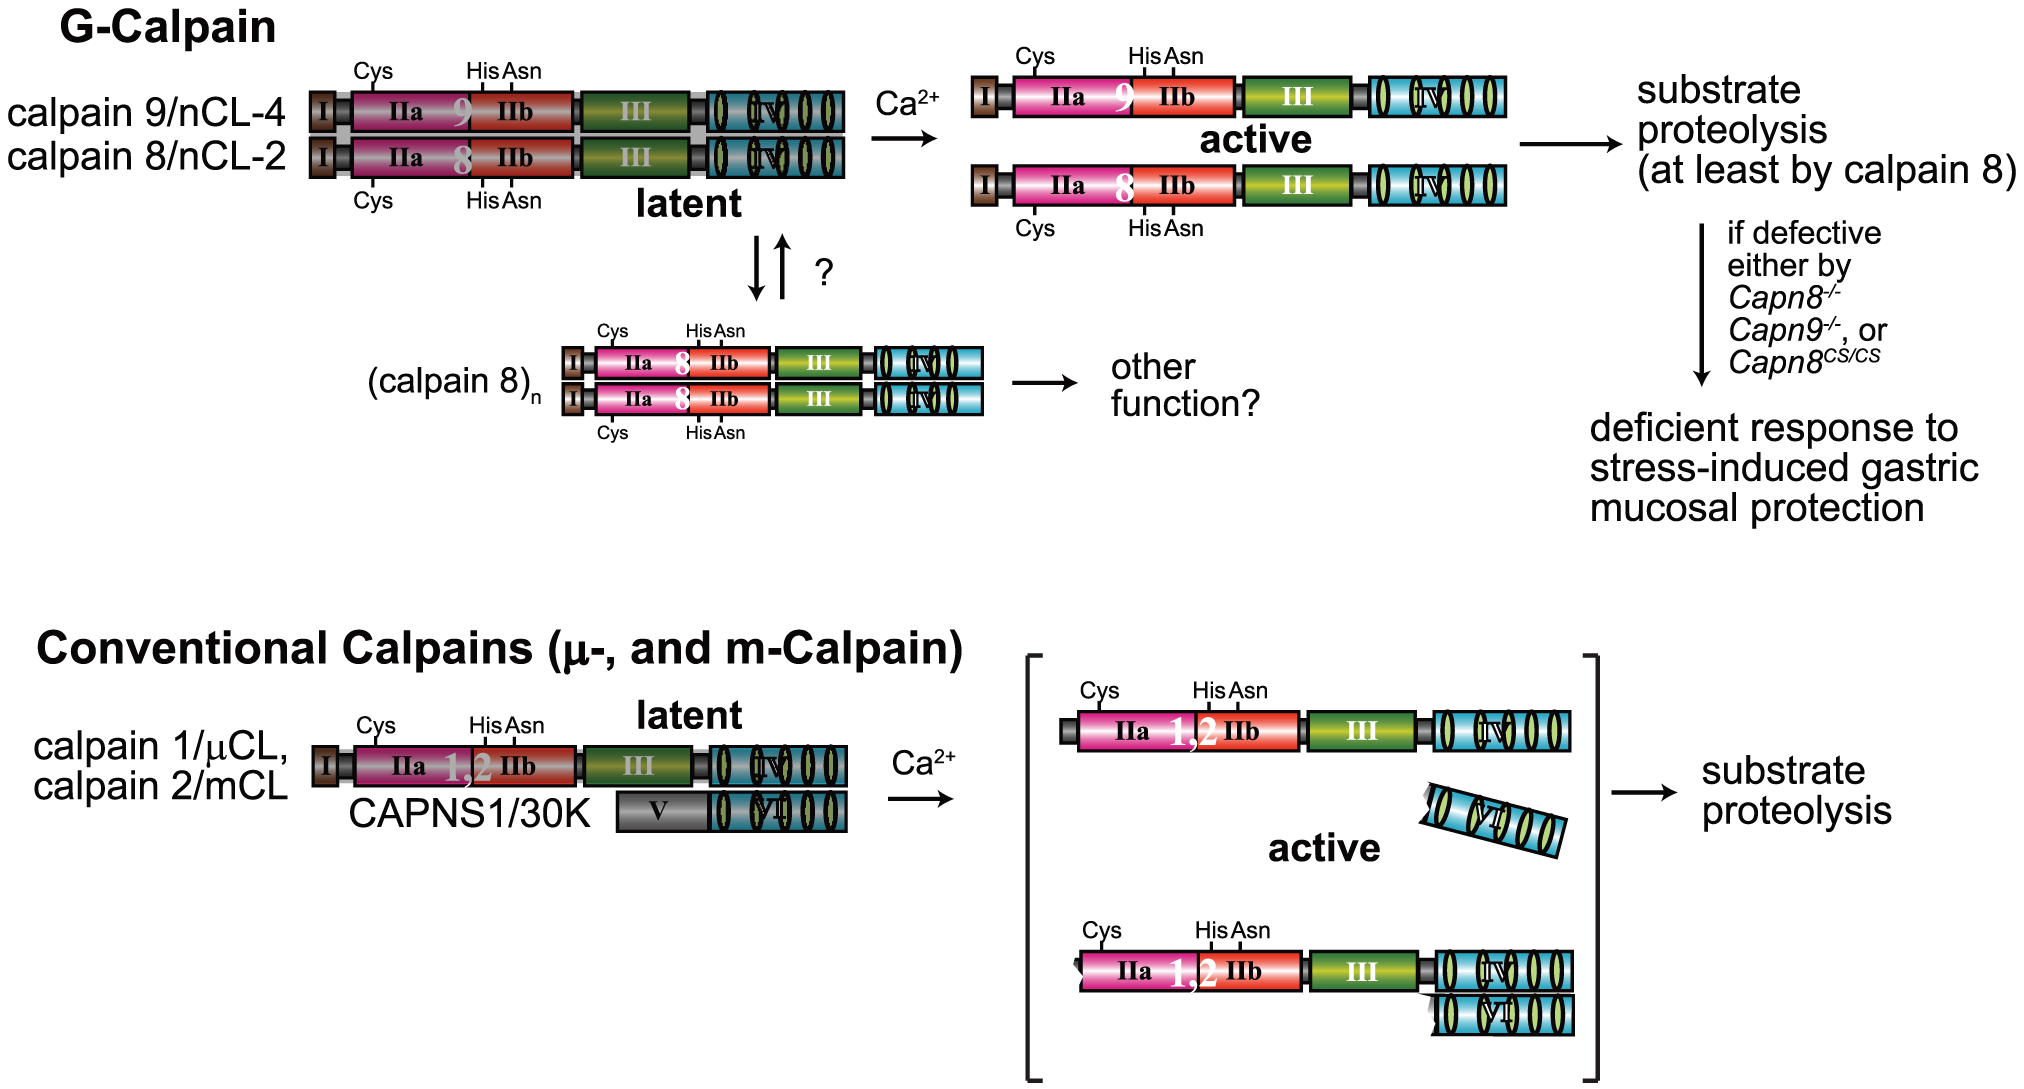 Hypothetical scheme for calpain activation in the stomach pit cells.